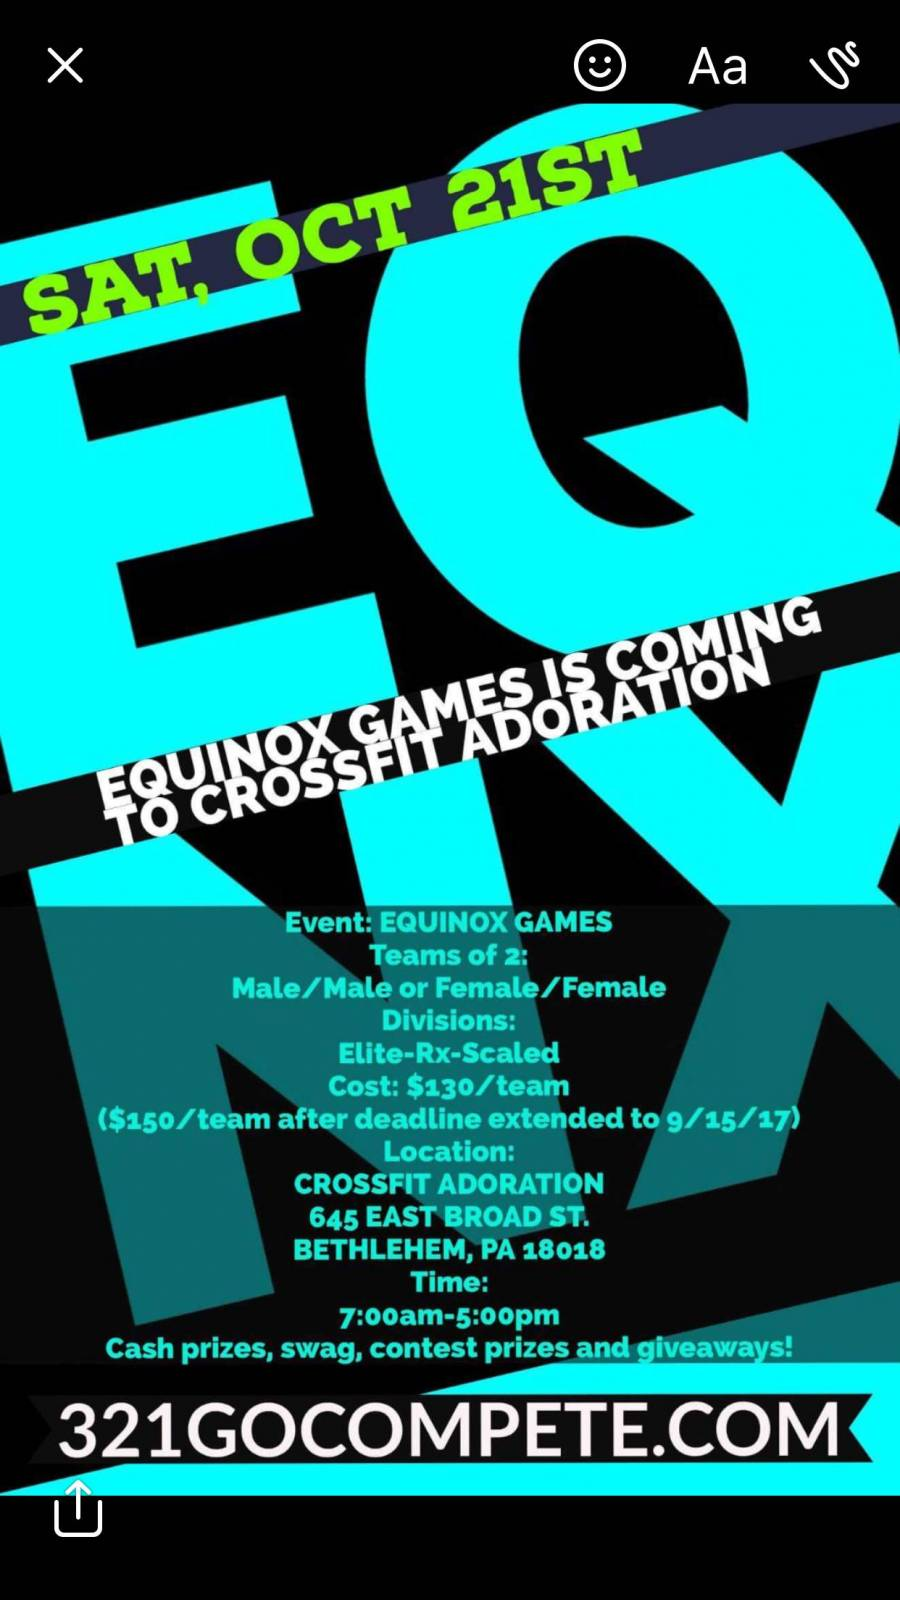 Equinox Games is coming to CrossFit Adoration!!